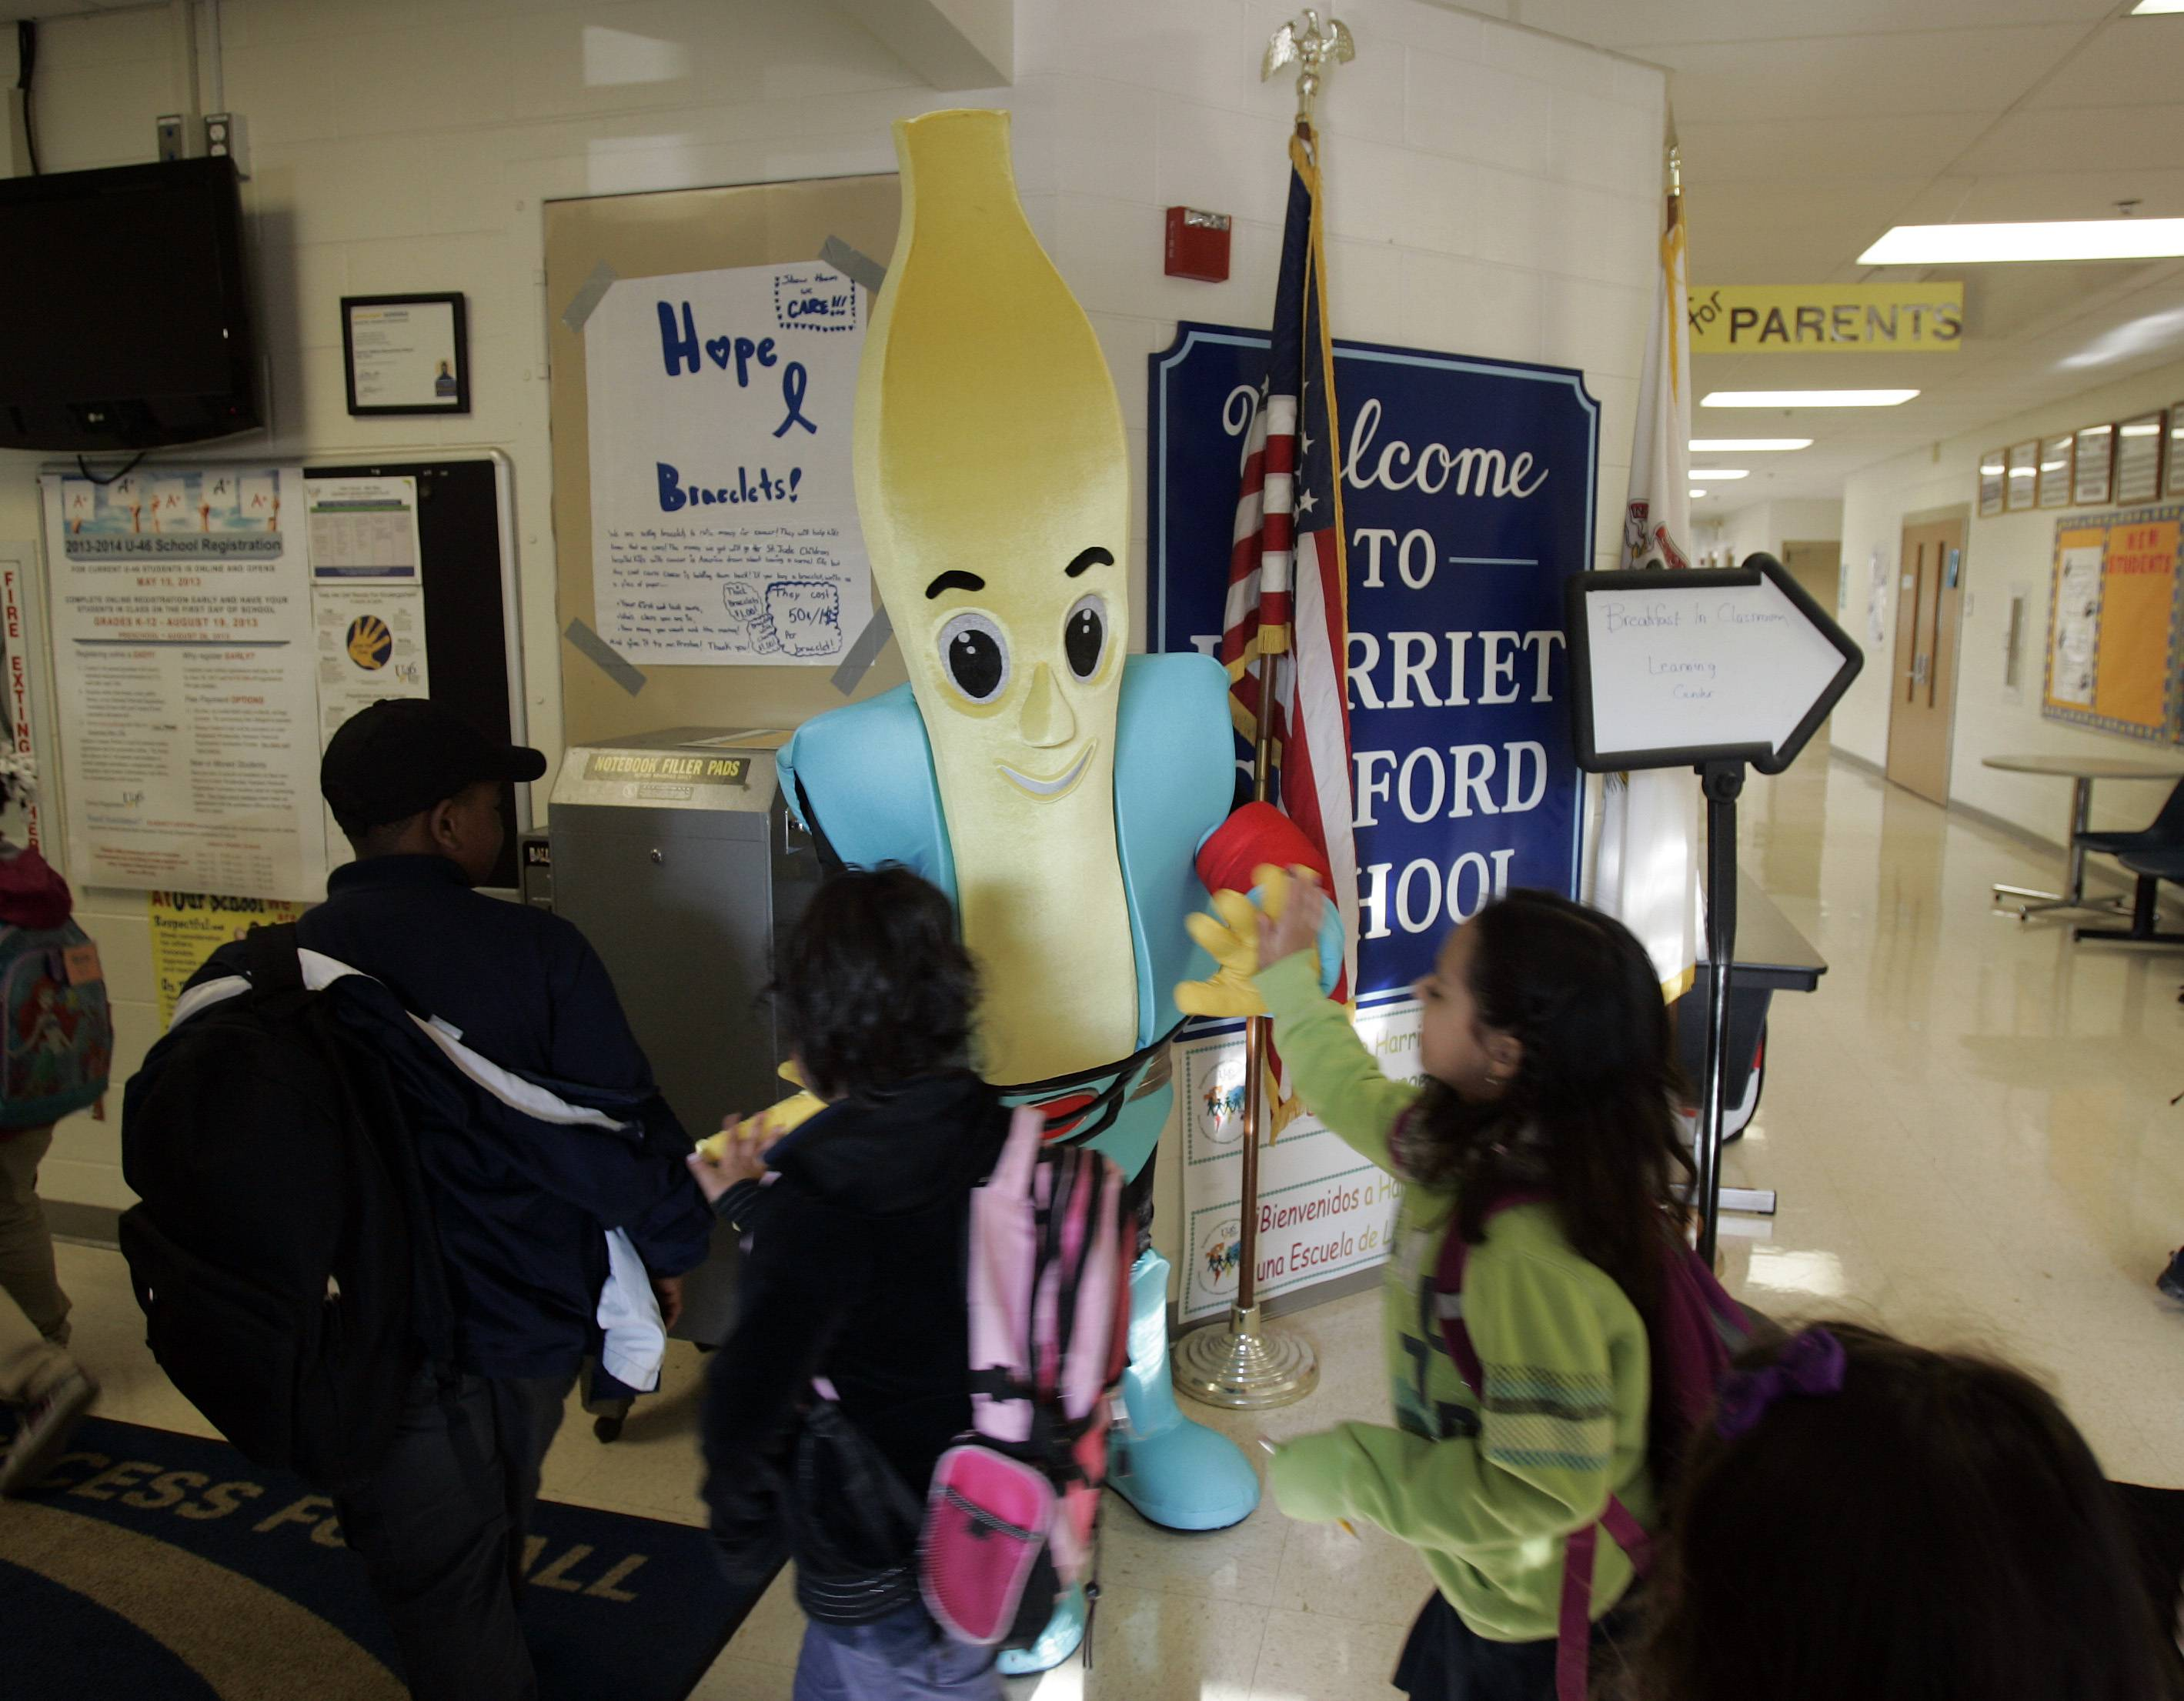 Captain Nutrition greets students at Harriet Gifford Elementary School in Elgin as they head to the classroom to enjoy breakfast as part of the Breakfast in Classroom program that is available at 10 U46 schools this year. Elgin Area School District U-46 teachers are trying to revive a special program that fed students a free breakfast in their classrooms.